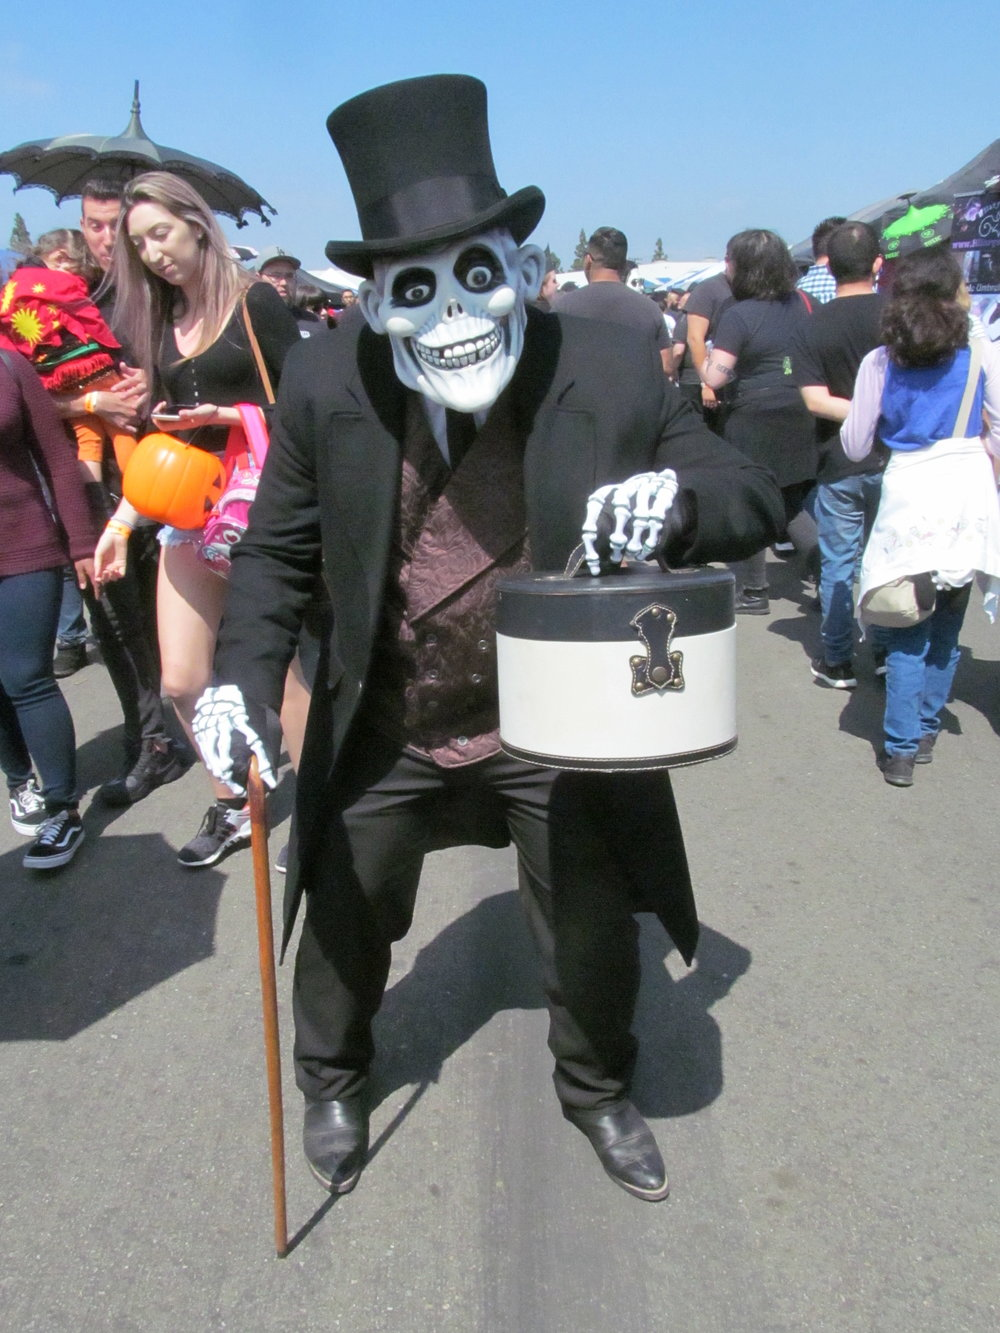 Hatbox Ghost from The Haunted Mansion